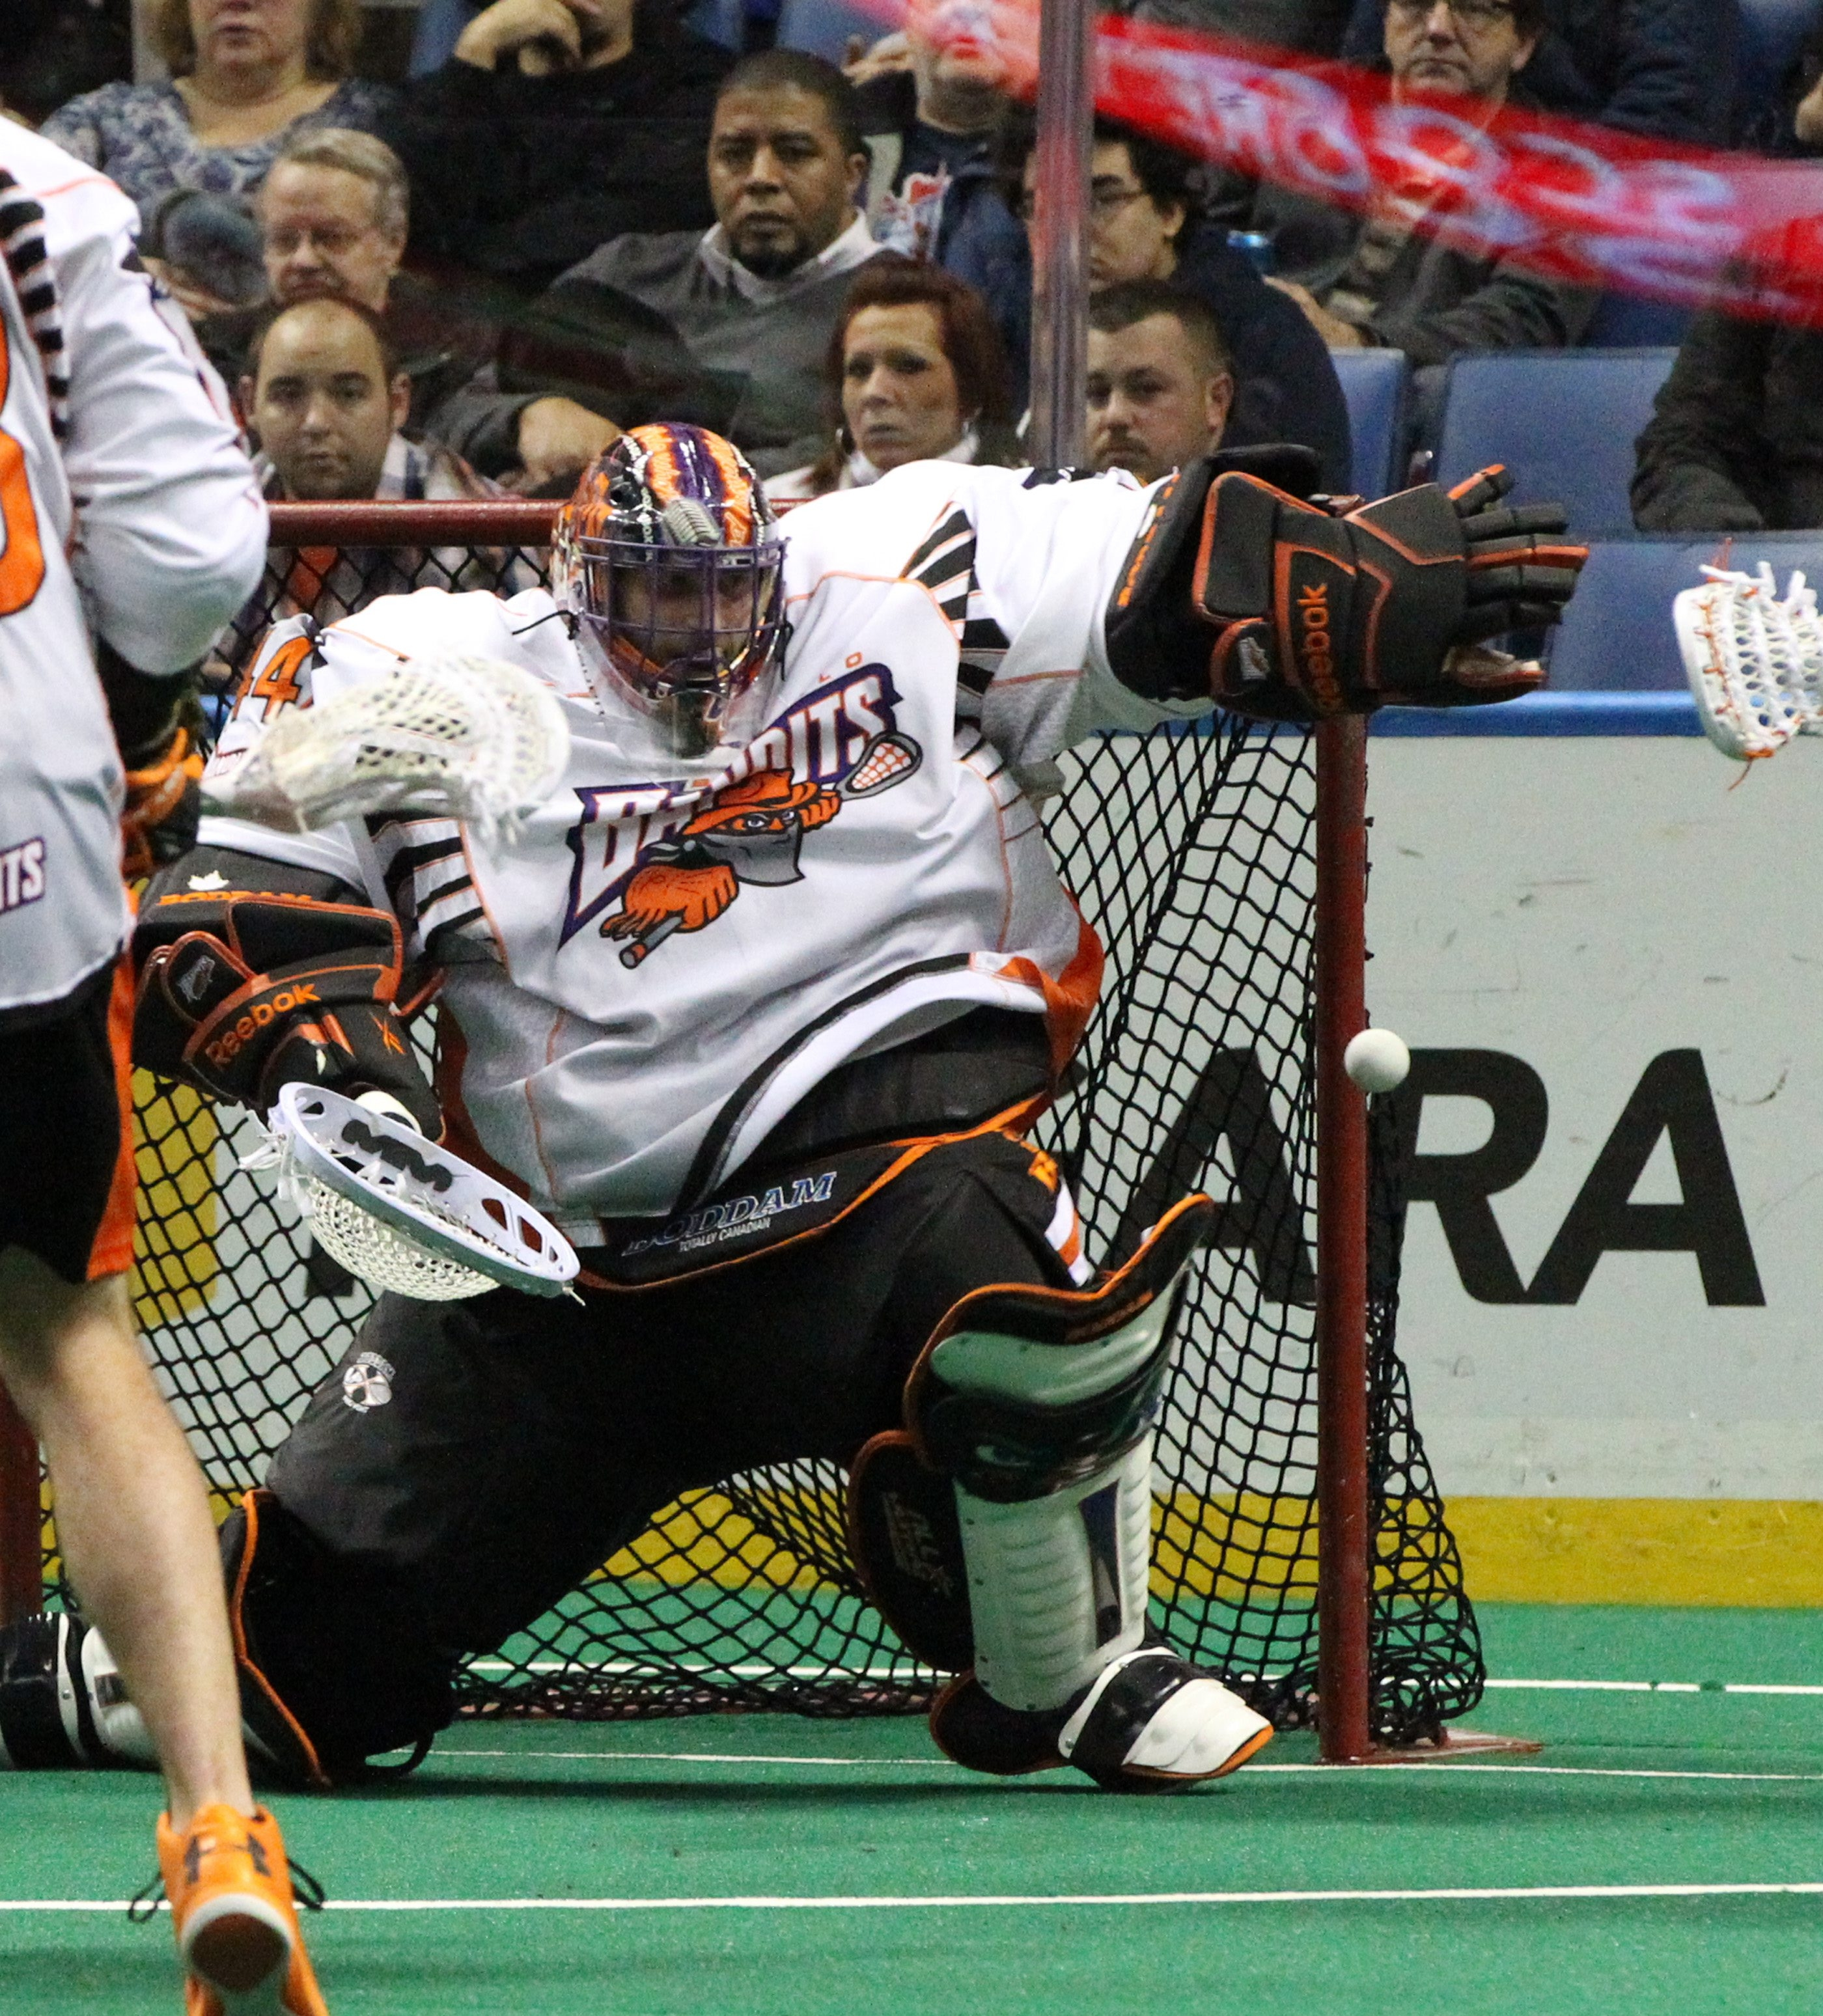 Bandits goalie Anthony Cosmo, who slumped in 2013, has bounced back this year with outstanding play in net. Cosmo will try to keep it going against the Philadelphia Wings tonight at First Niagara Center.